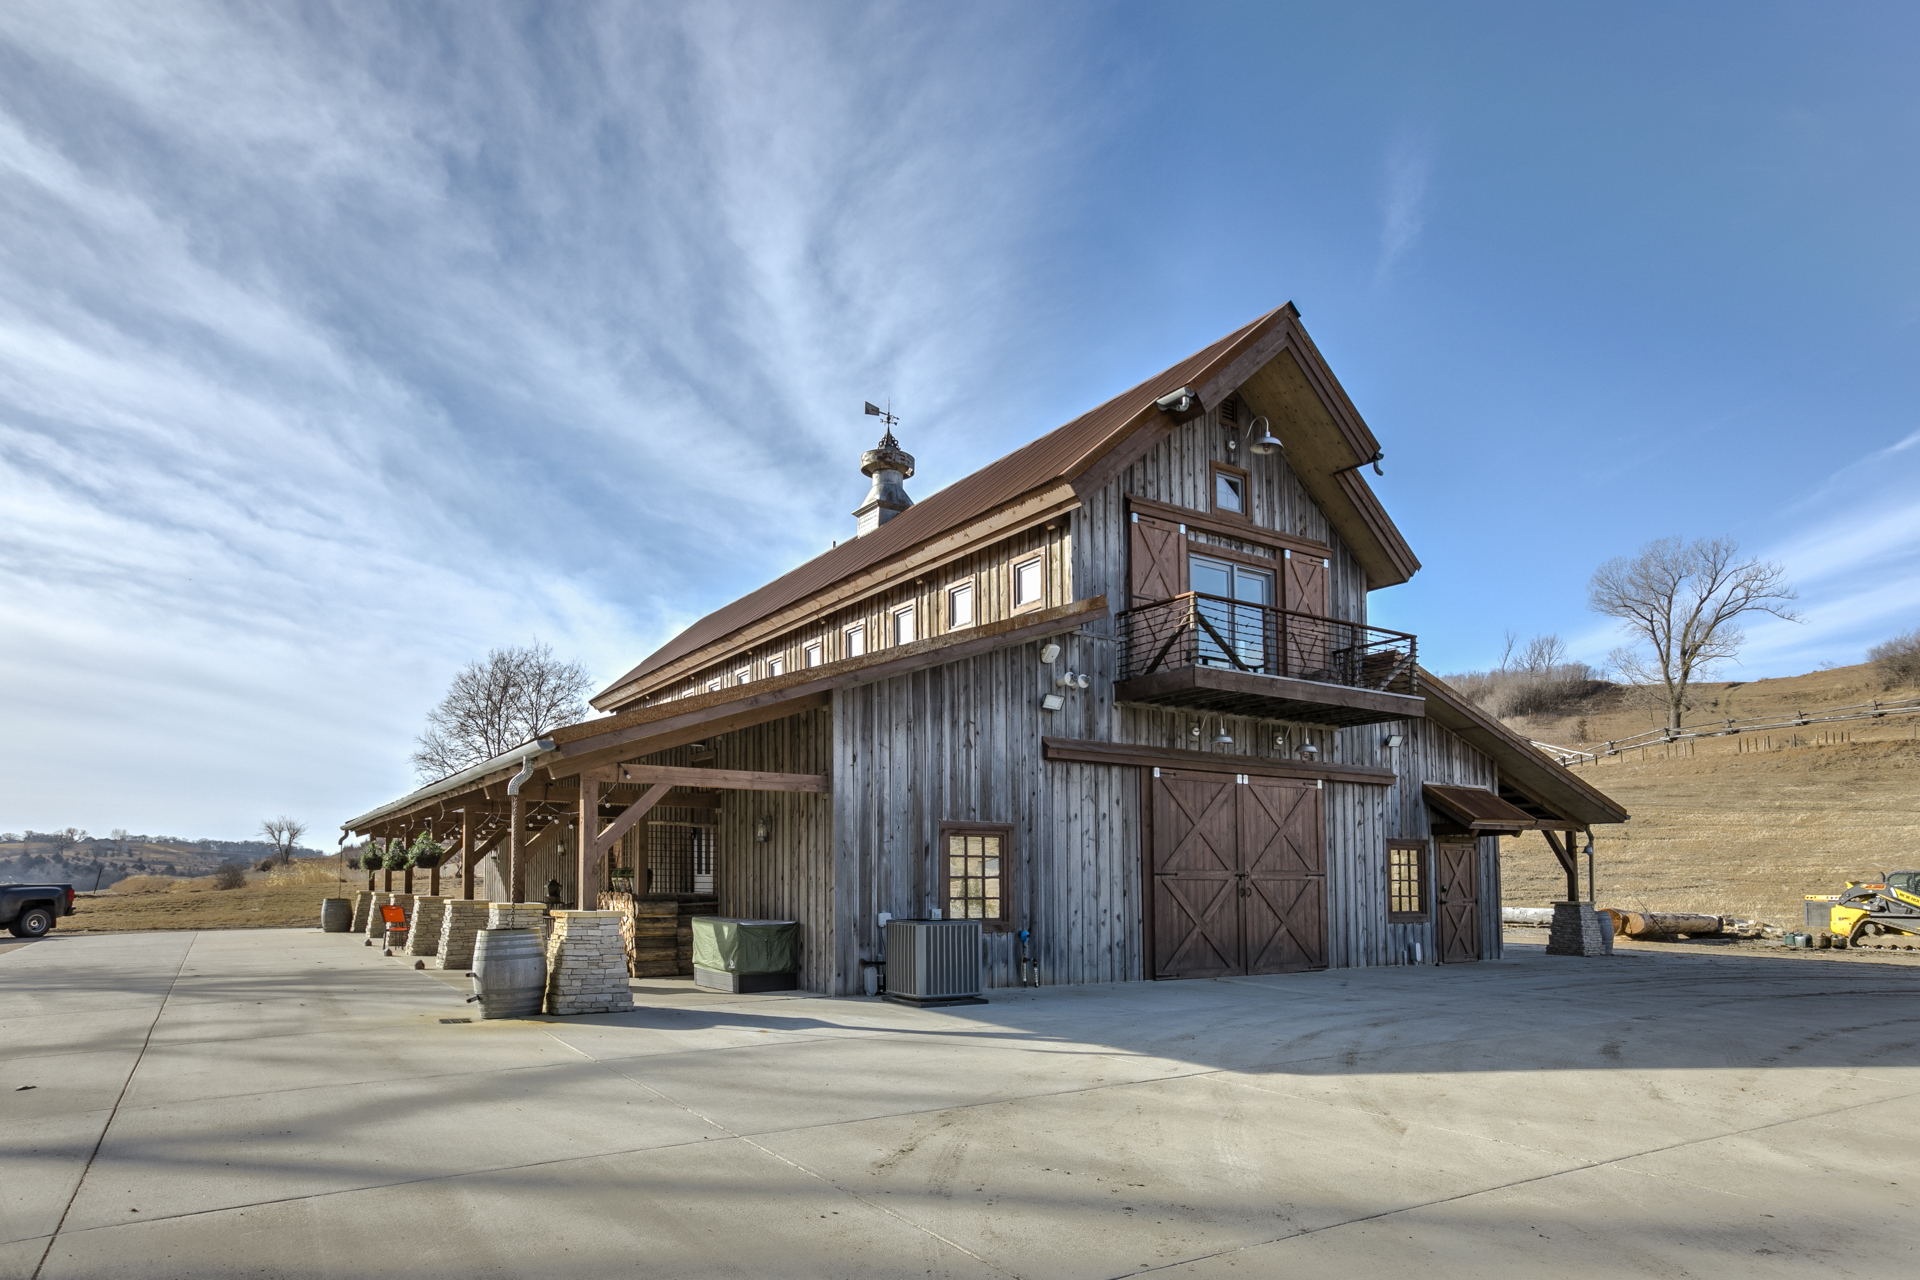 An exterior view of a barn house with a wood facade and a large steel sliding door.